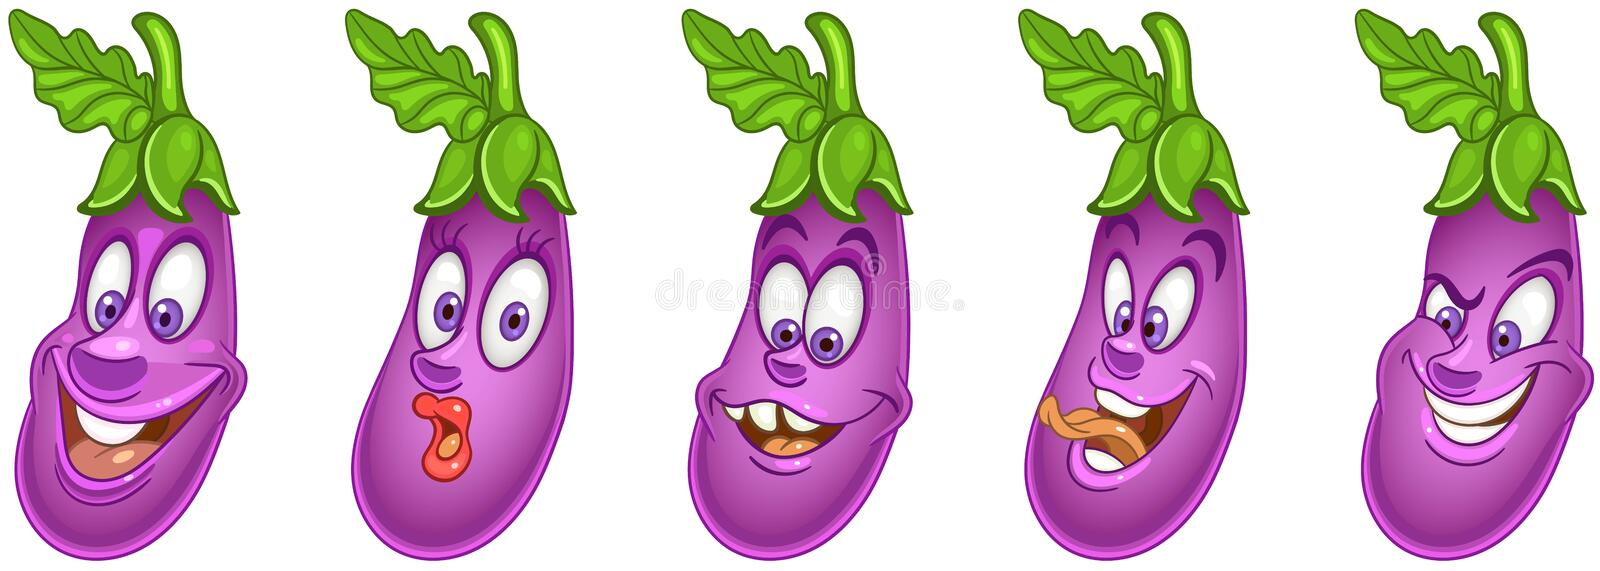 Eggplant. Vegetable Food concept stock photos